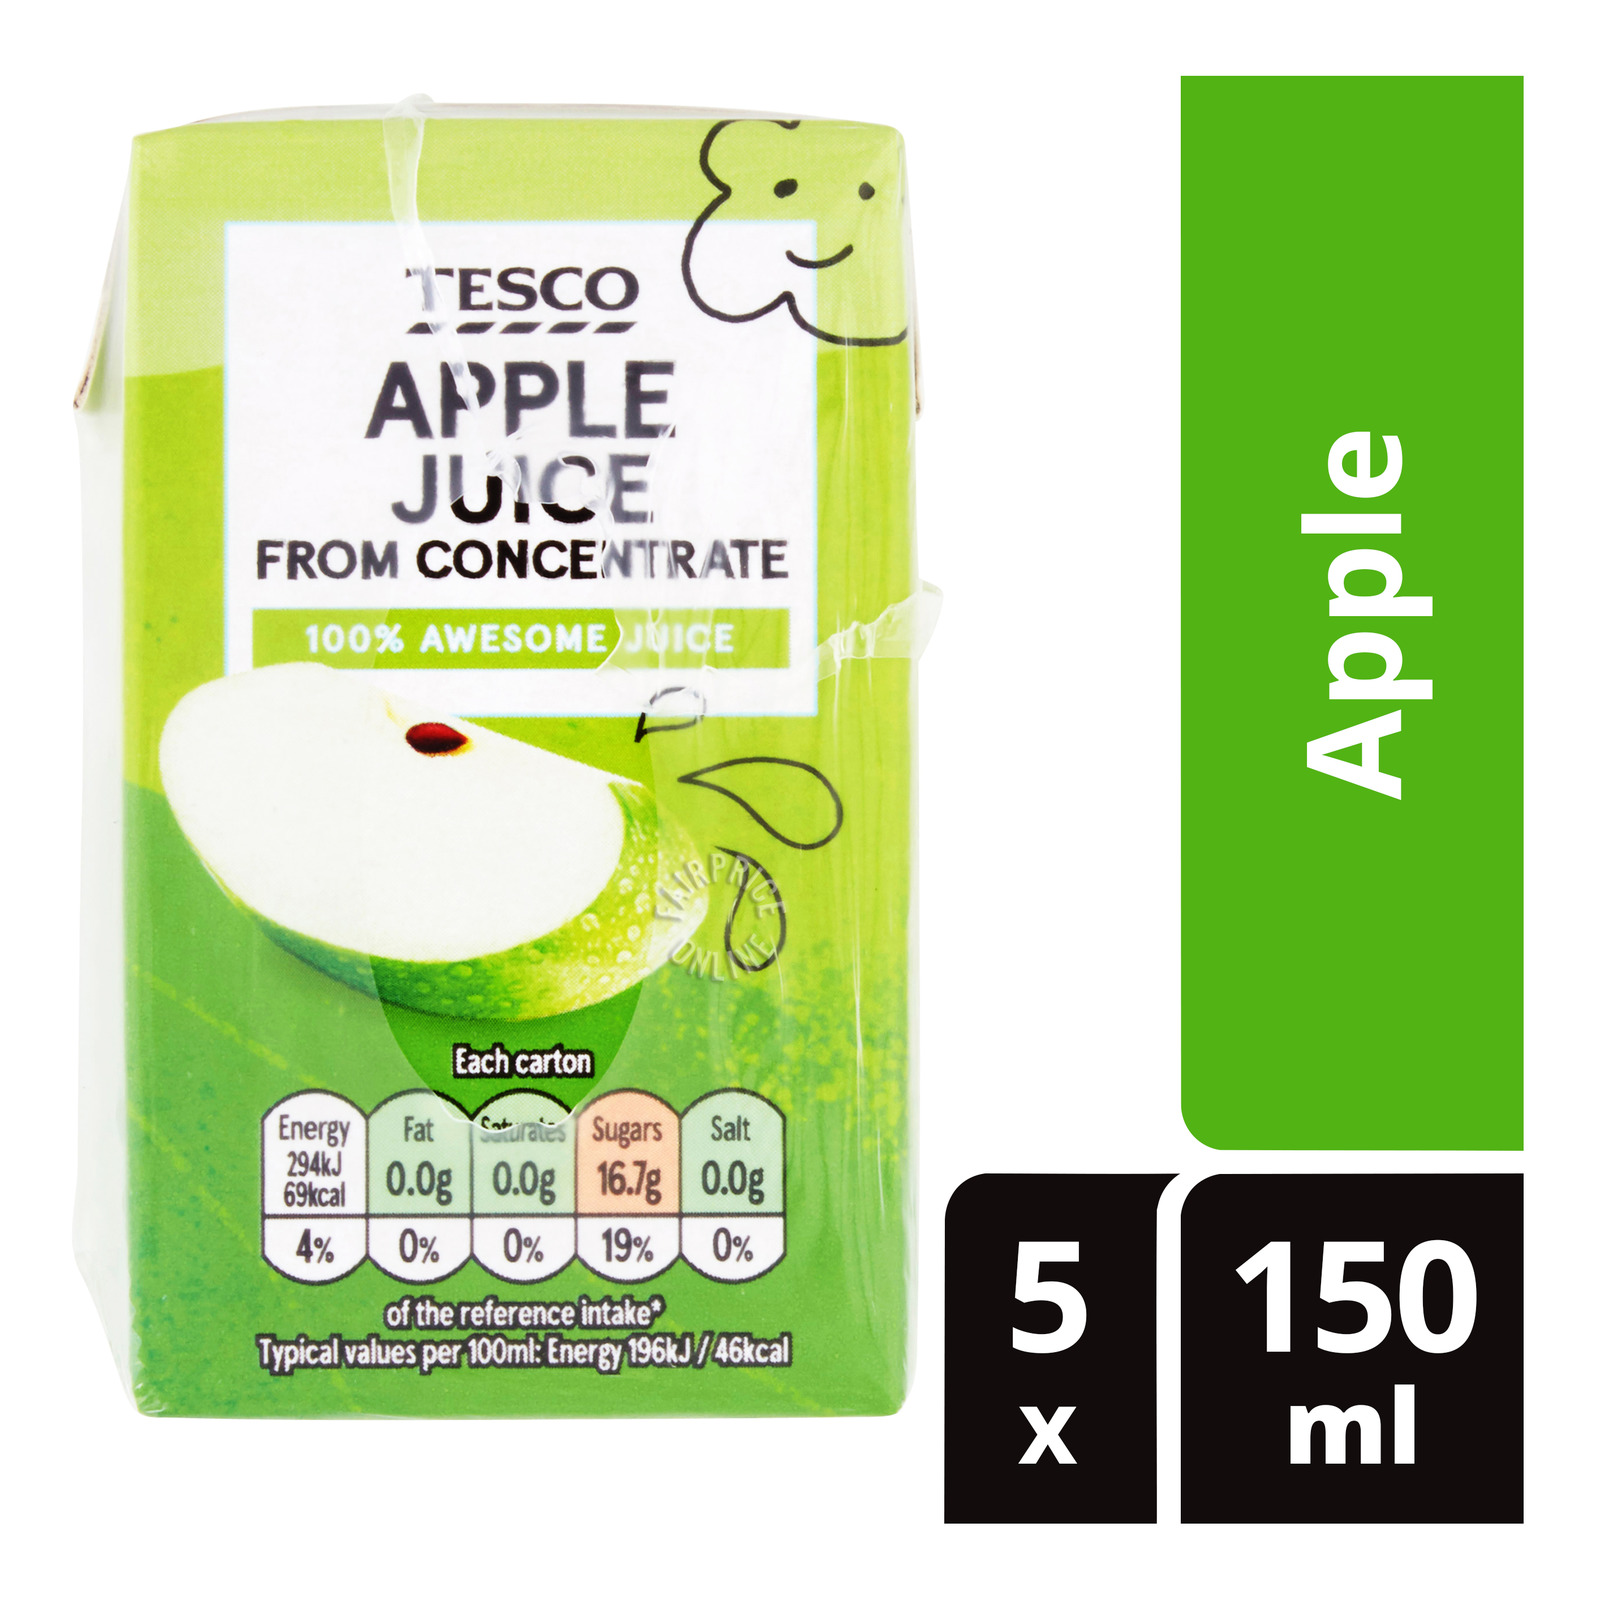 Tesco Juice From Concentrate Packet Drink - Apple